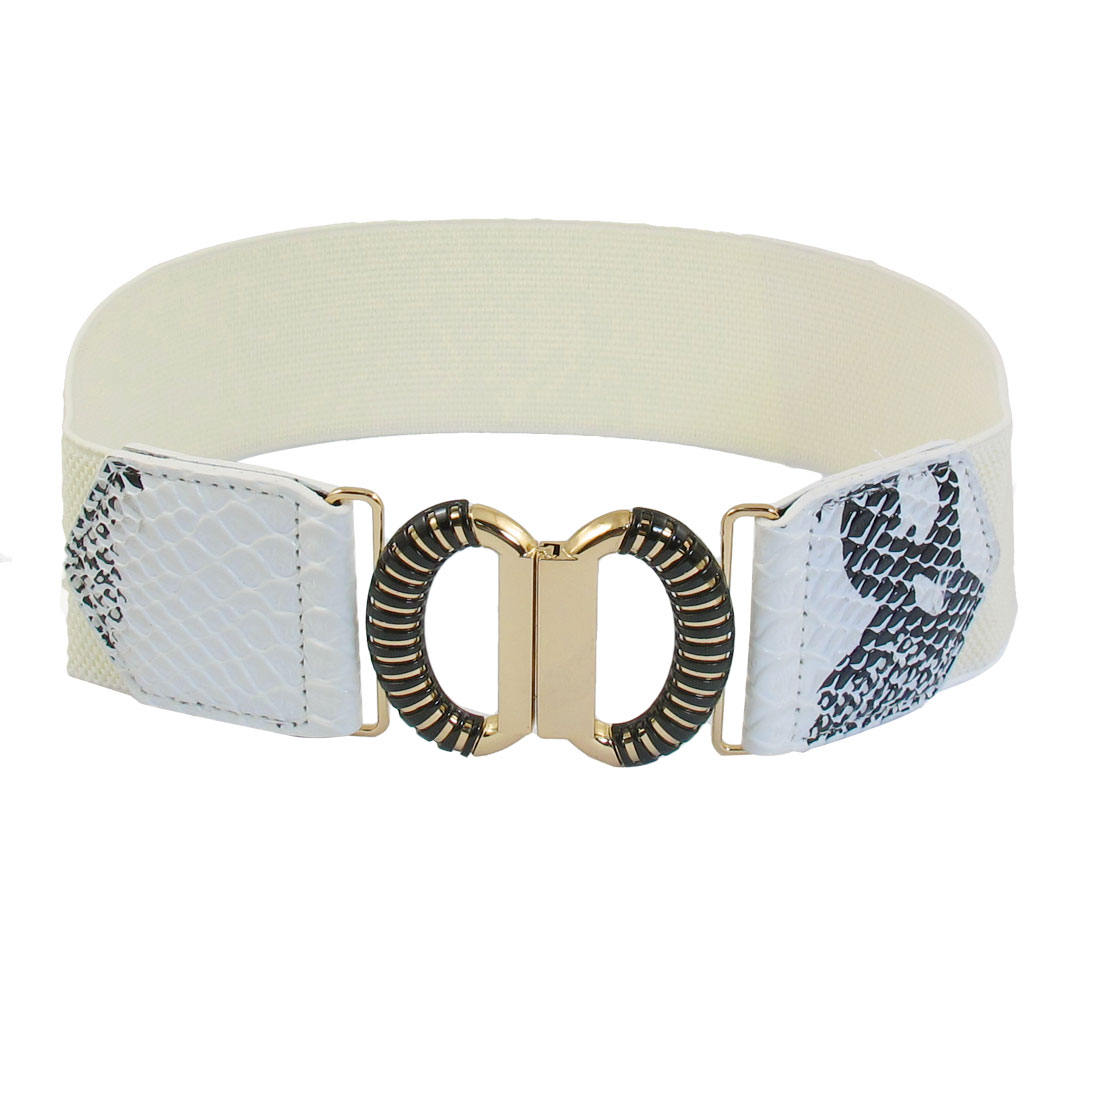 White Faux Leather Snake Pattern Elastic Band Interlocking Women Waist Belt